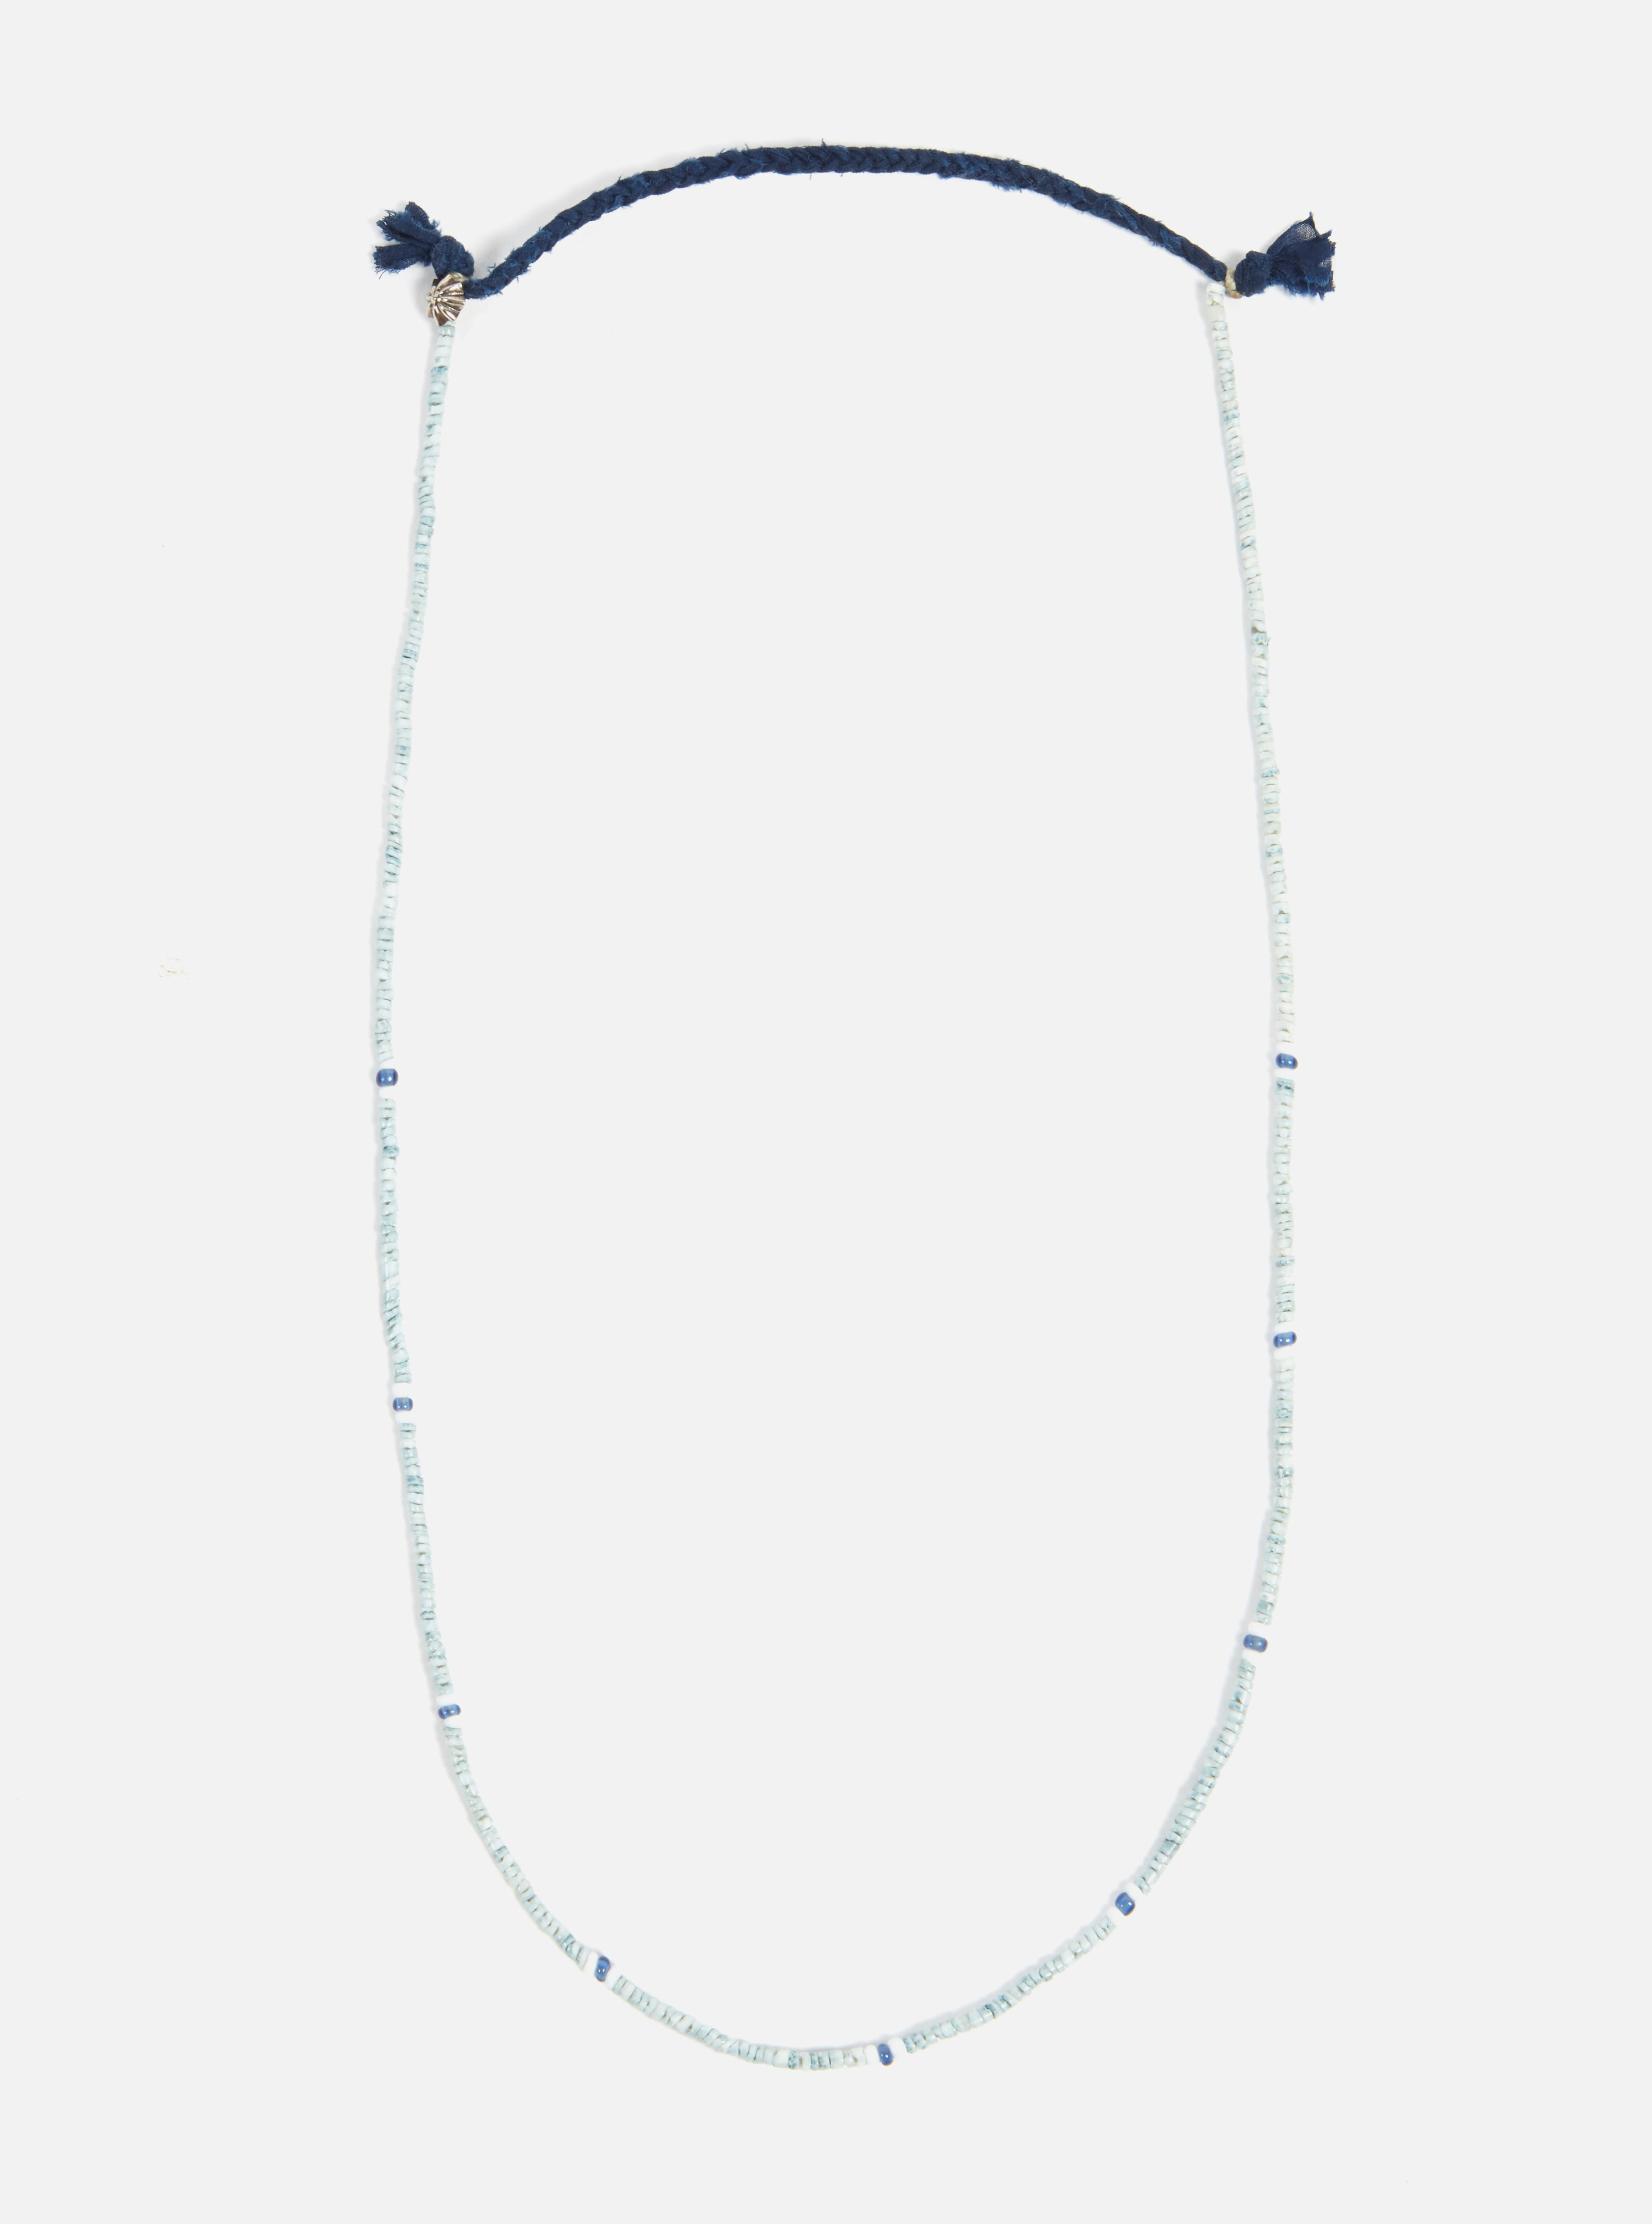 NORTH WORKS of Japan Necklace #6